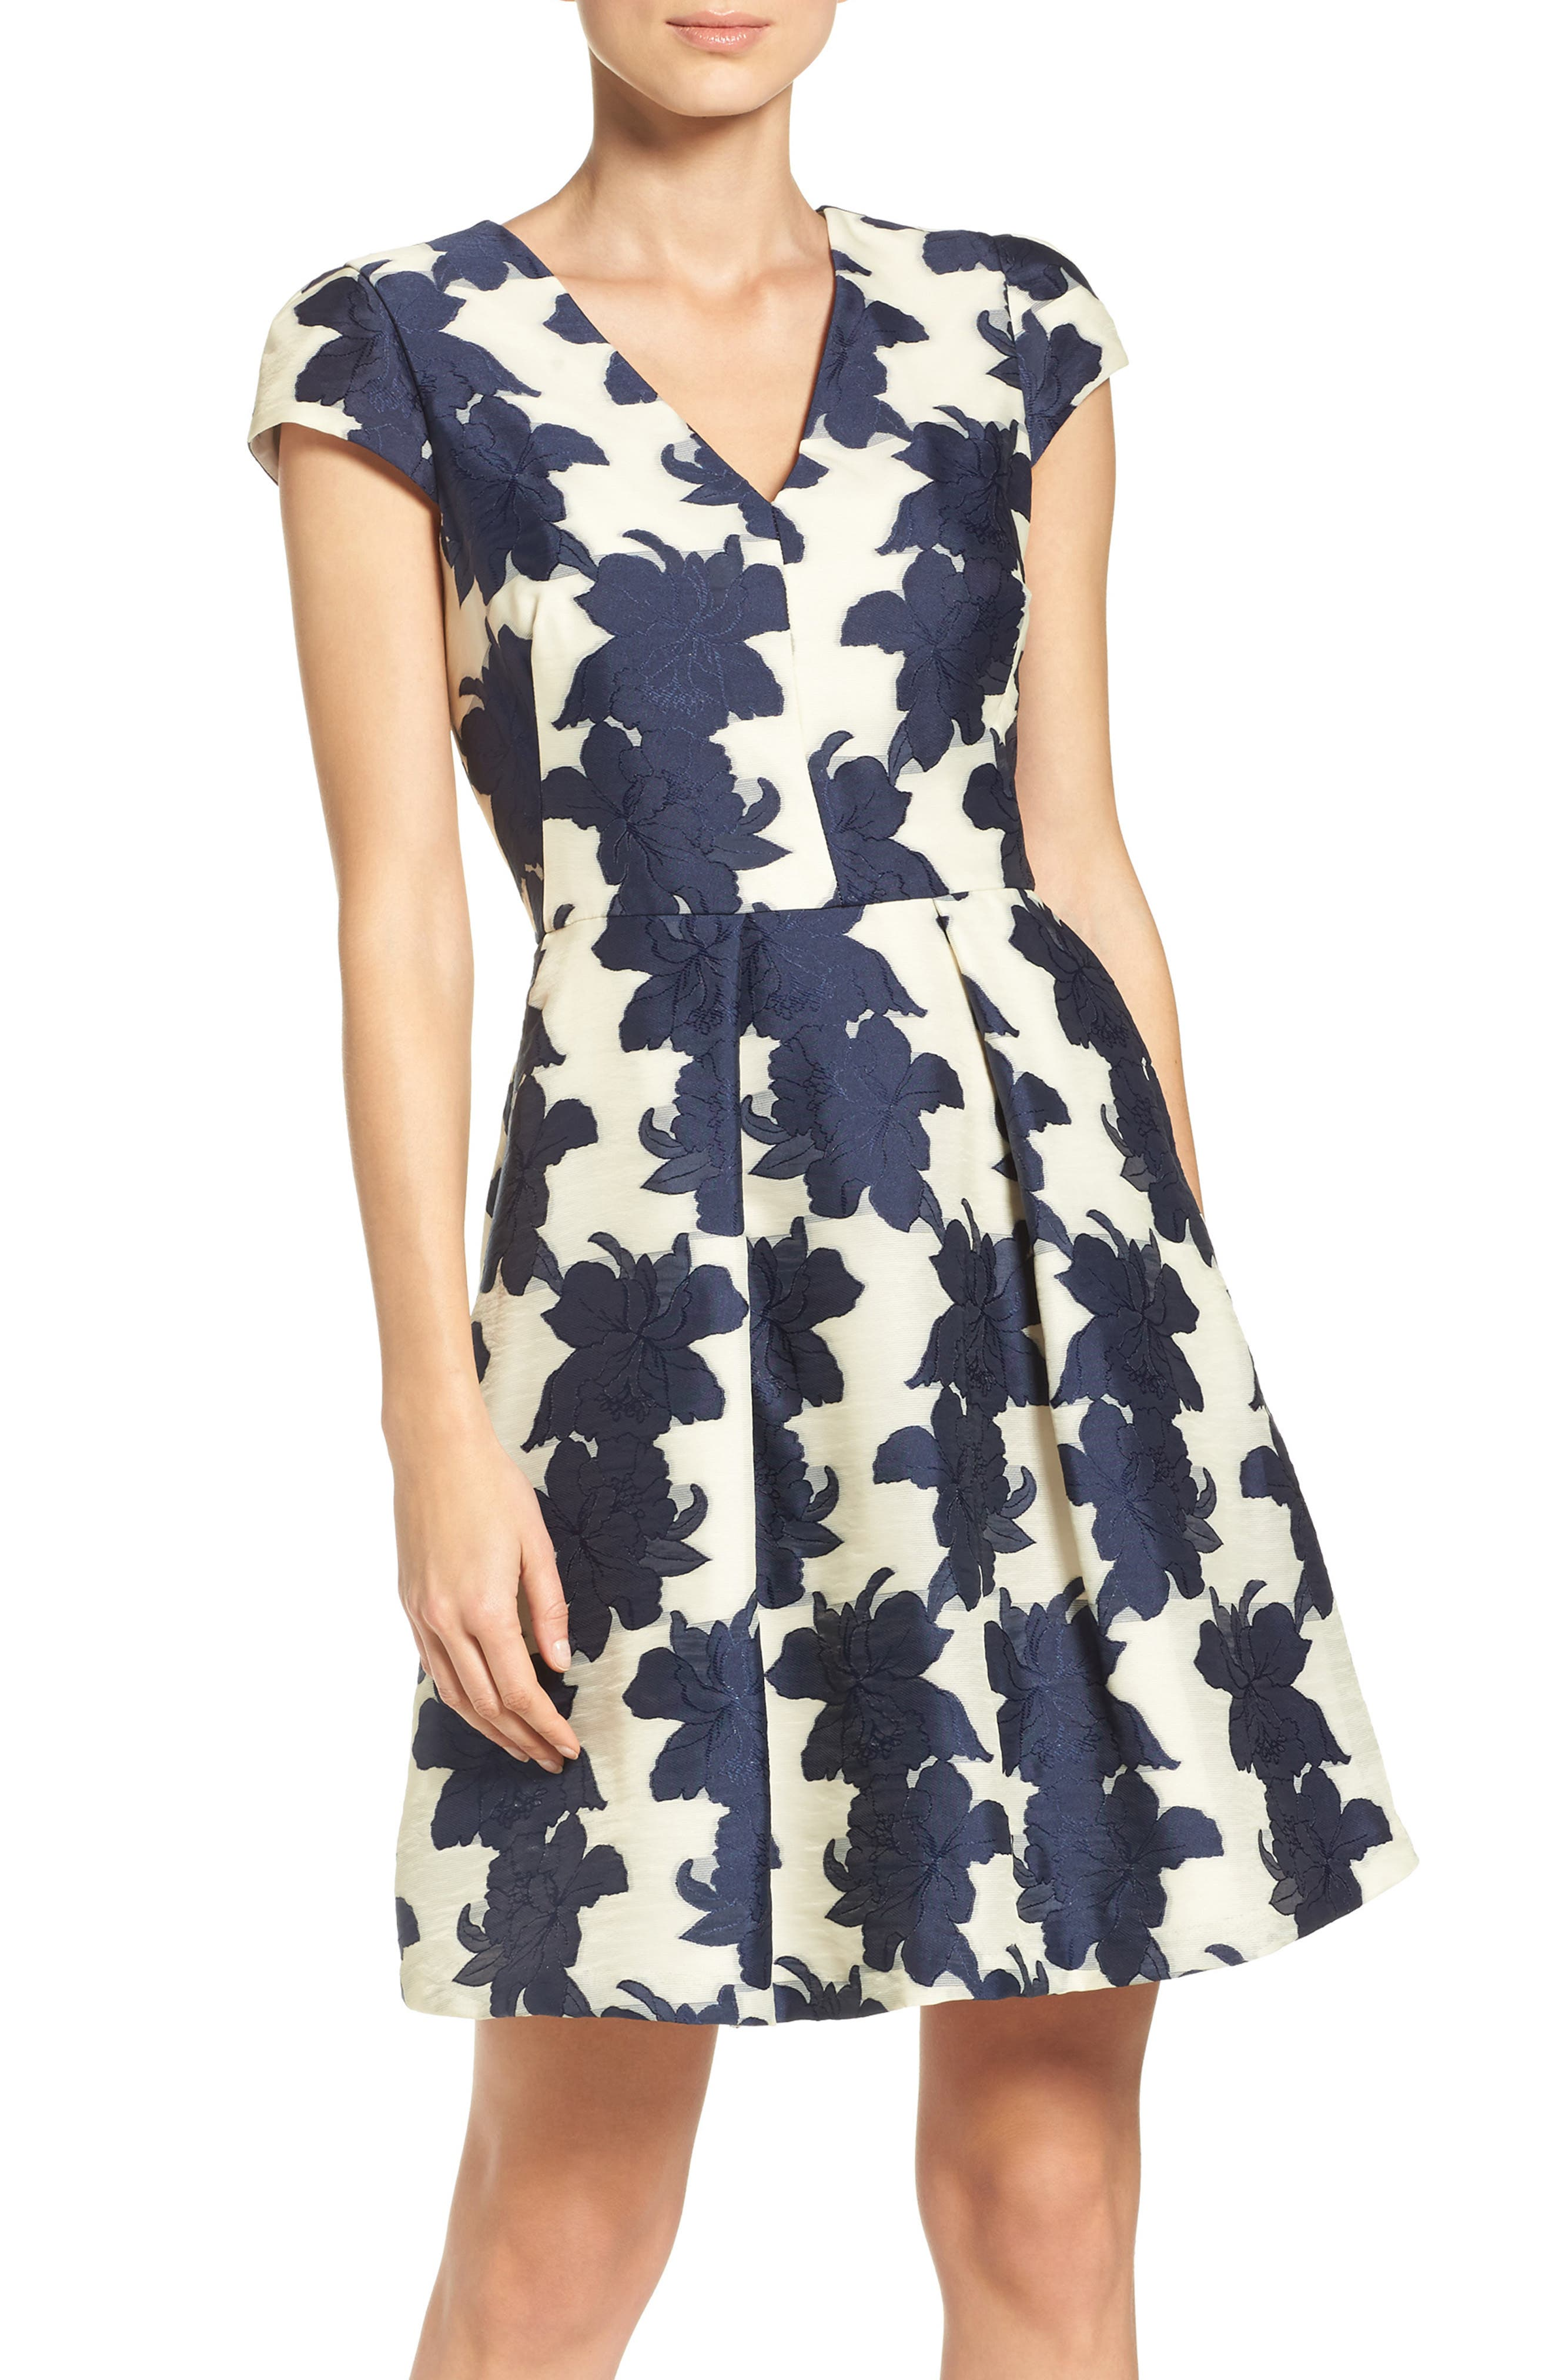 Main Image - Vince Camuto Floral Organza Fit & Flare Dress (Regular & Petite)